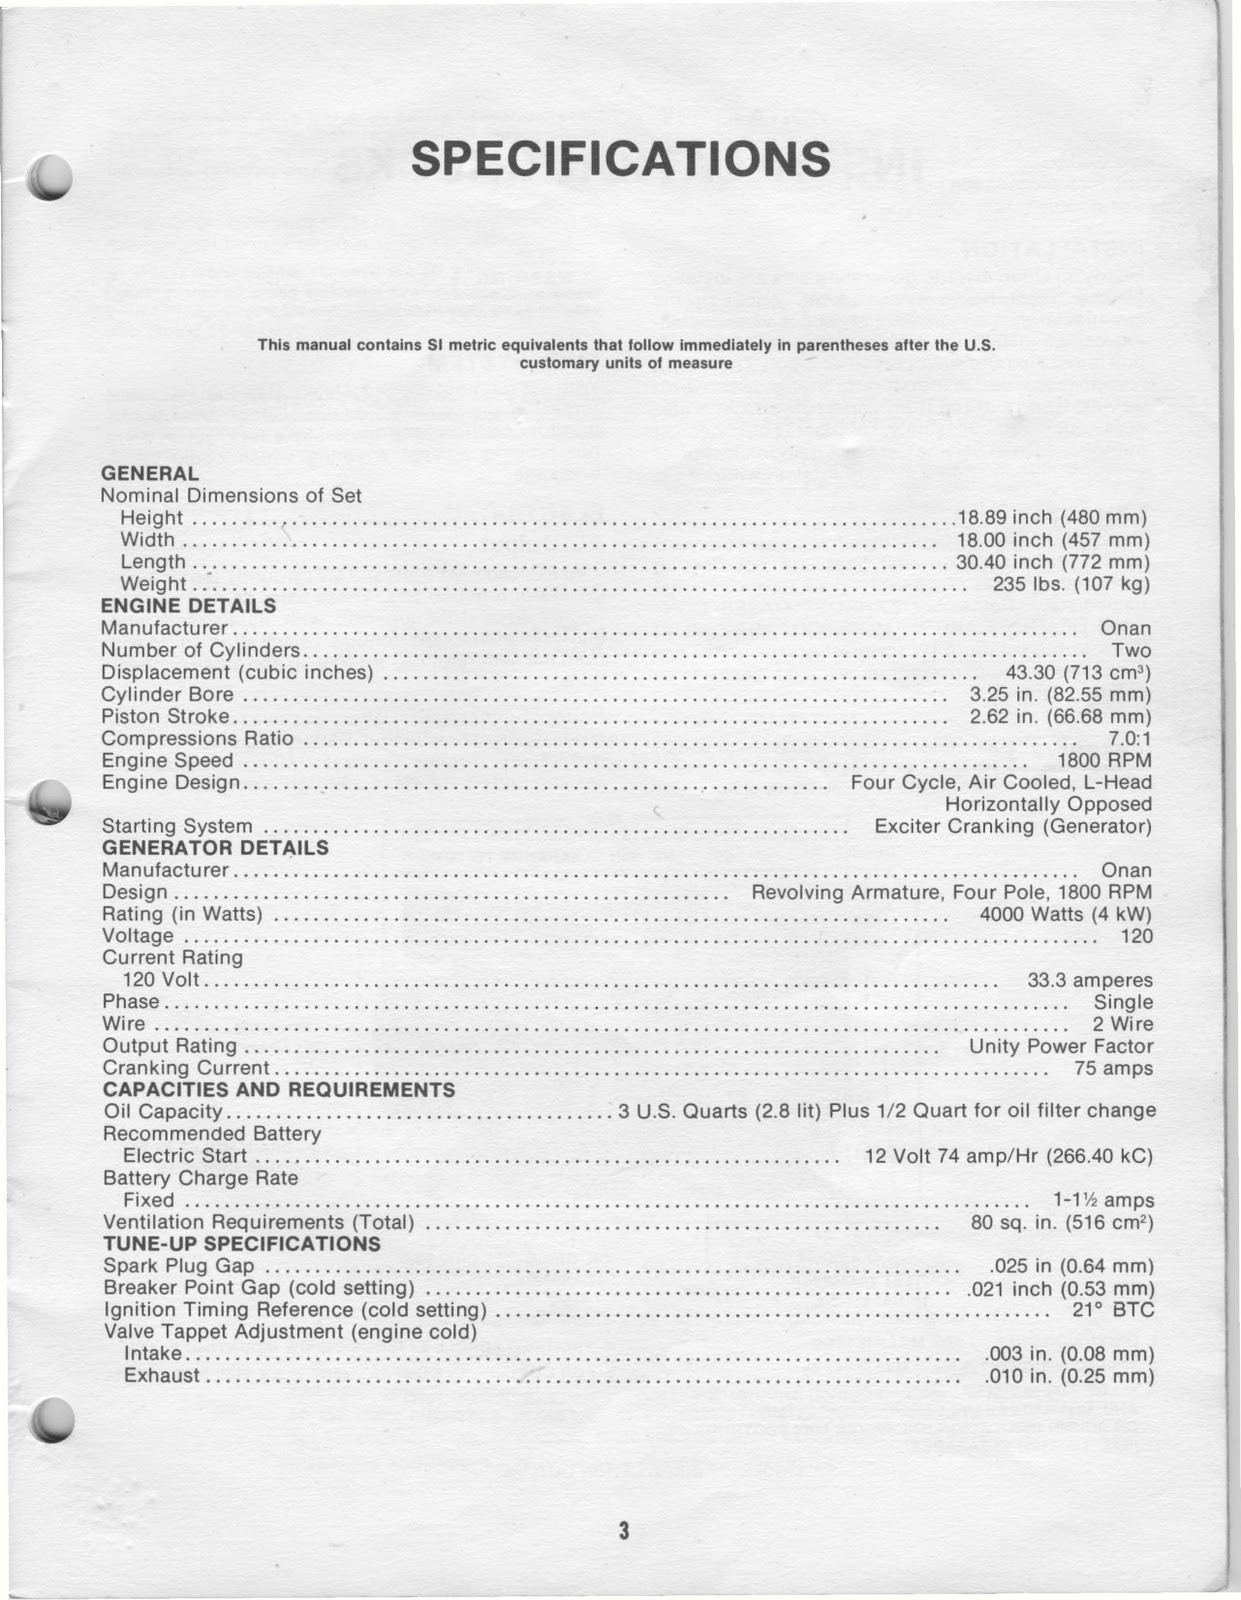 Onan generator Manual 1983 on